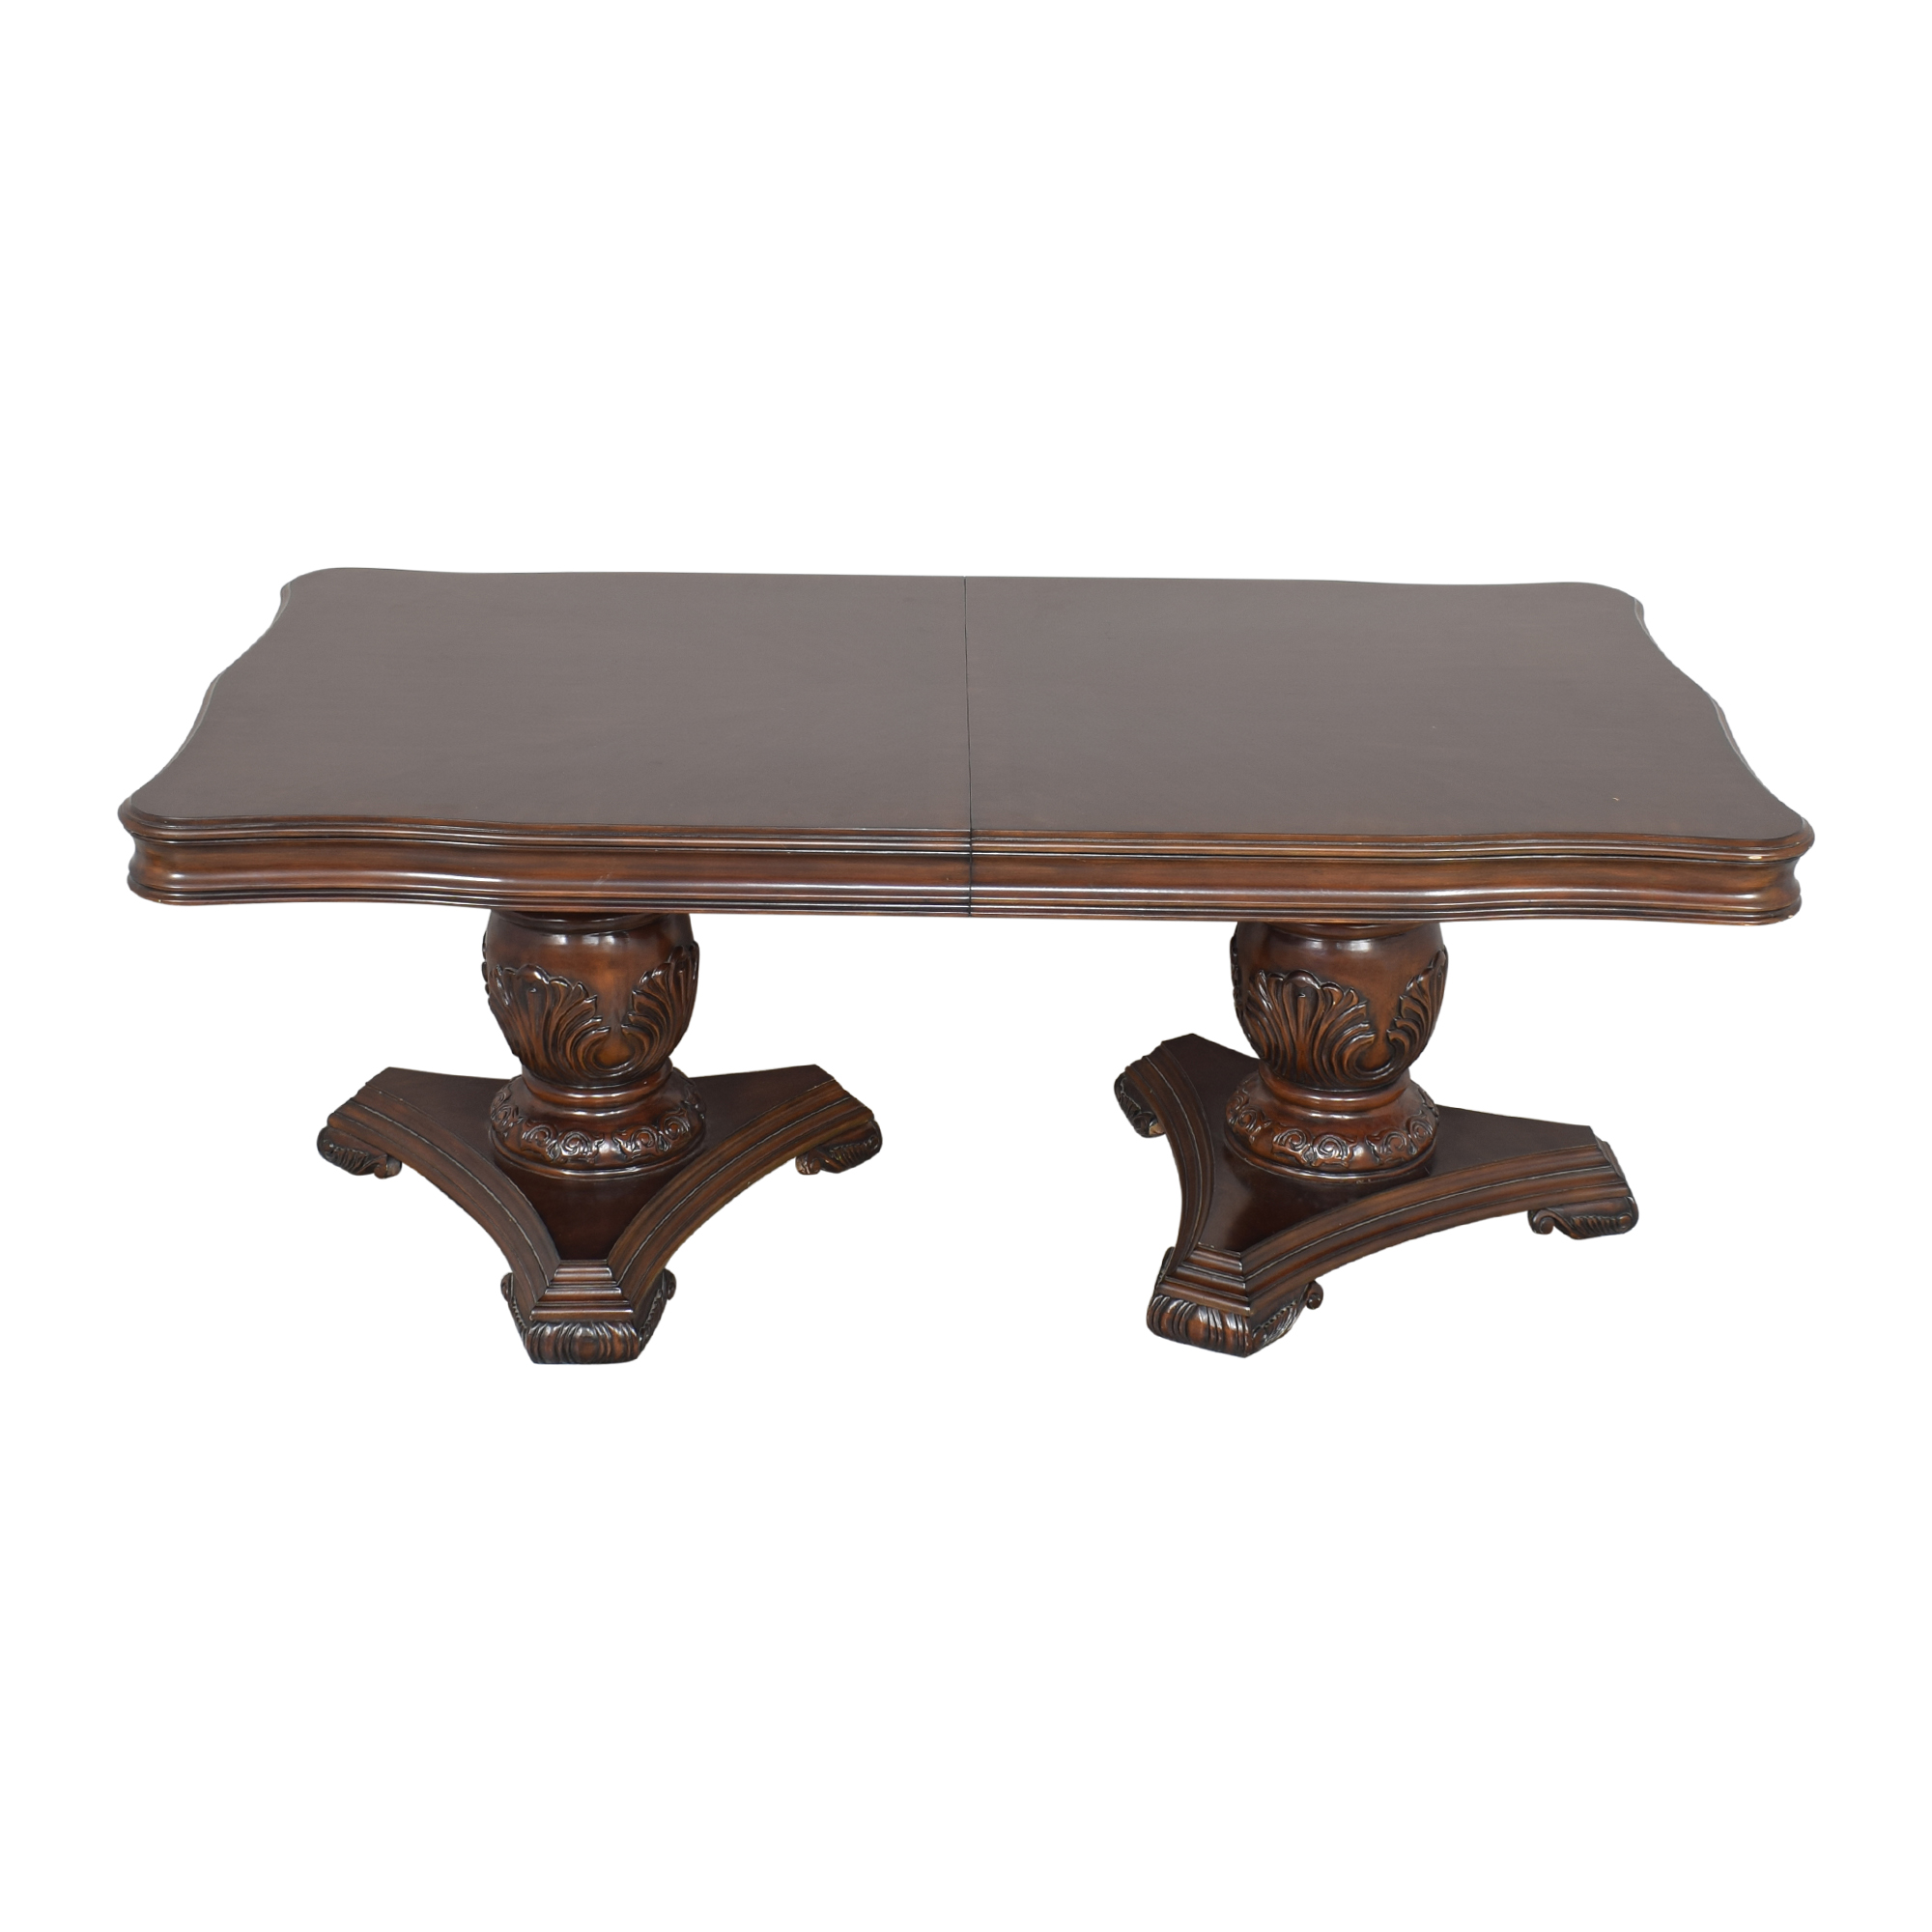 Raymour & Flanigan Raymour & Flanigan Double Pedestal Dining Table dark brown